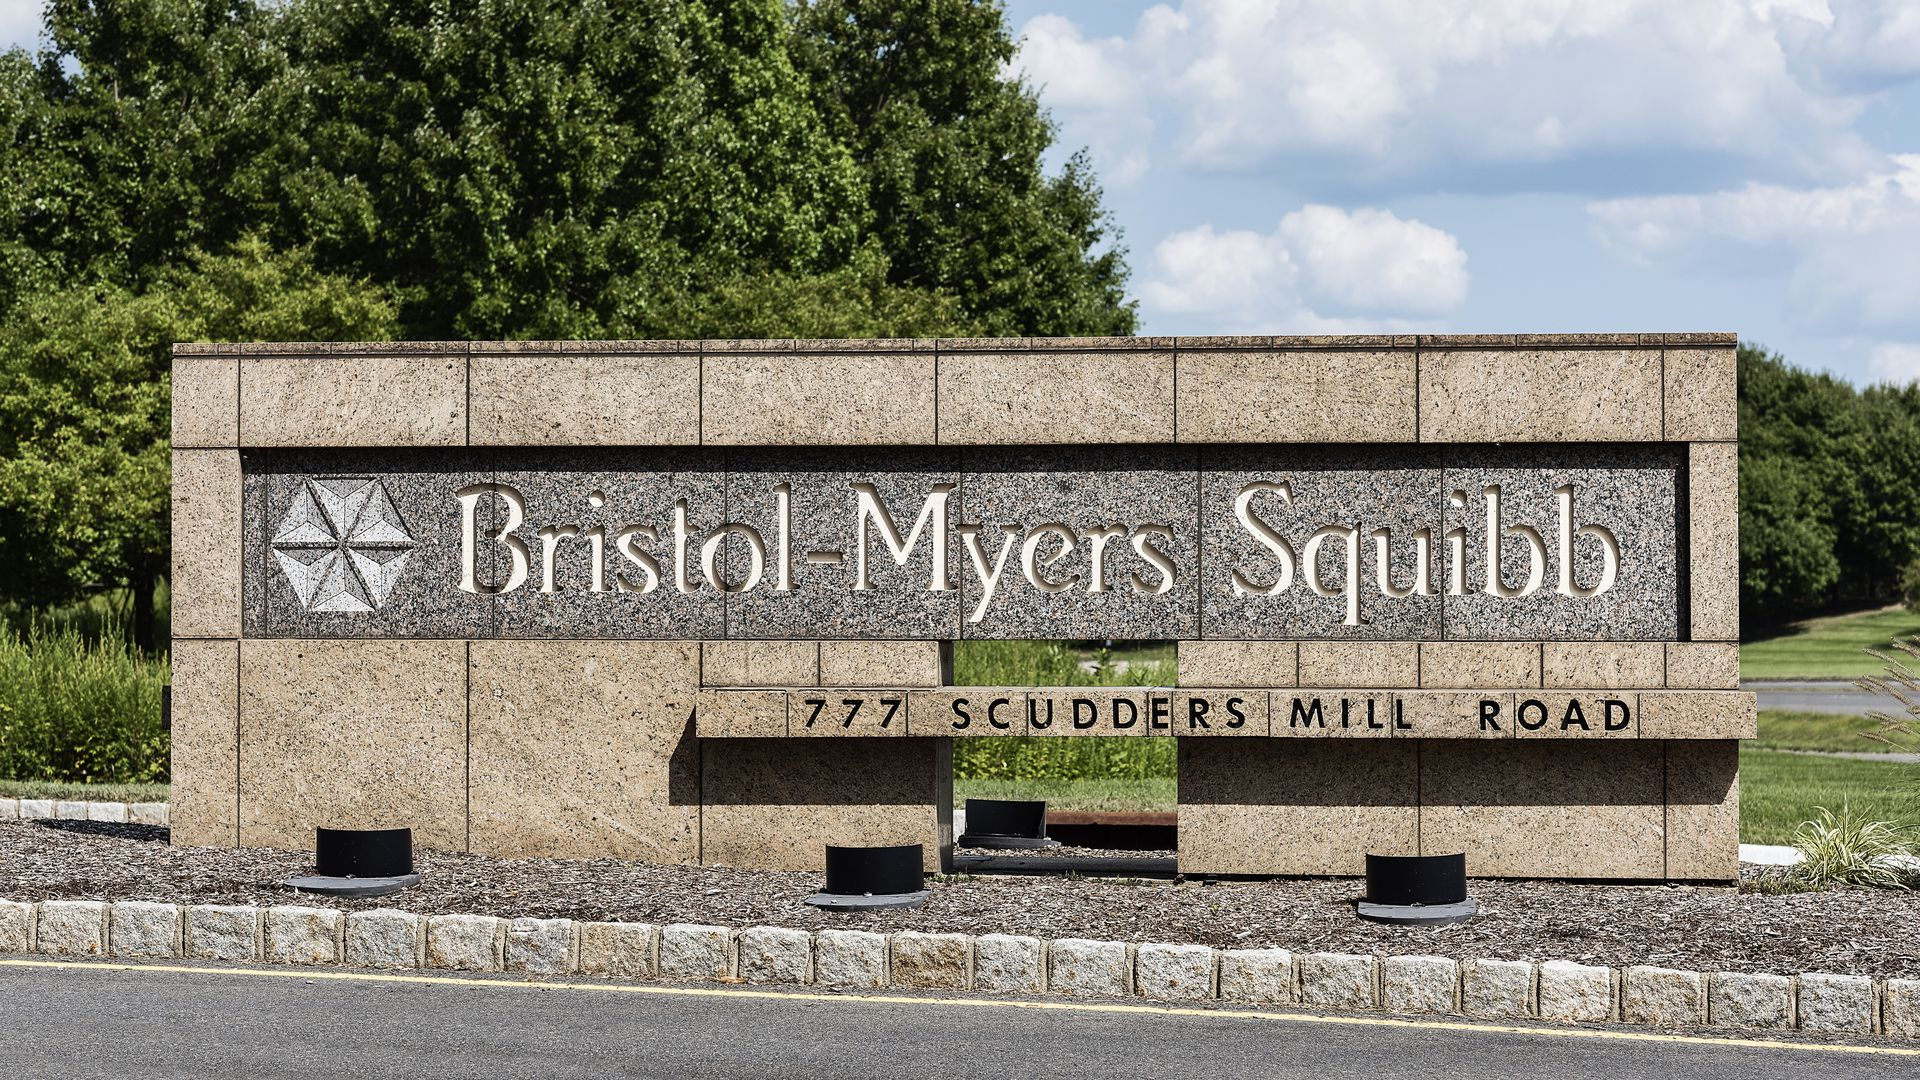 A sign with the Bristol-Myers Squibb name and logo.